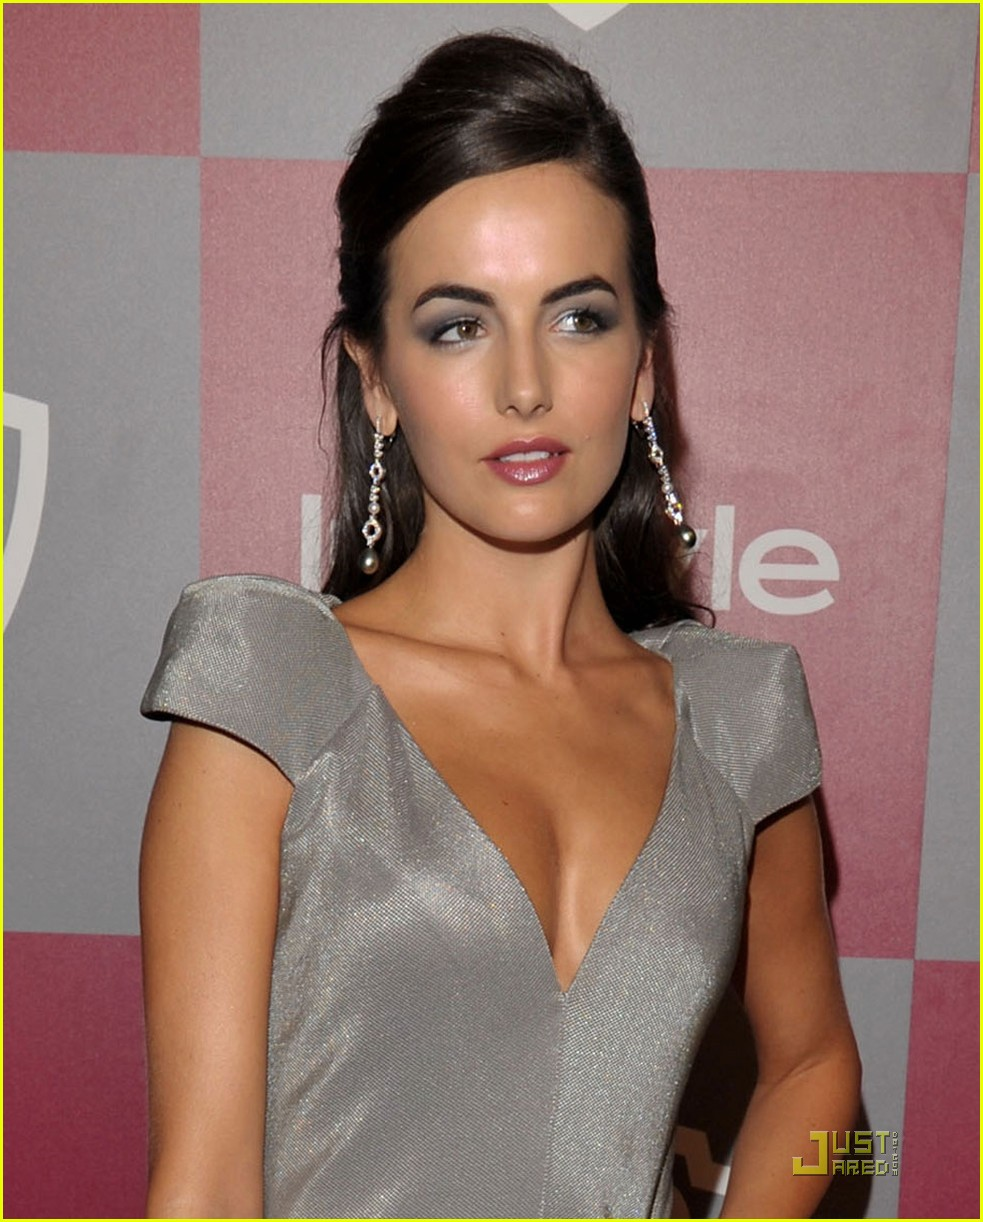 Hot Camilla Belle naked (33 foto and video), Ass, Bikini, Instagram, cleavage 2018